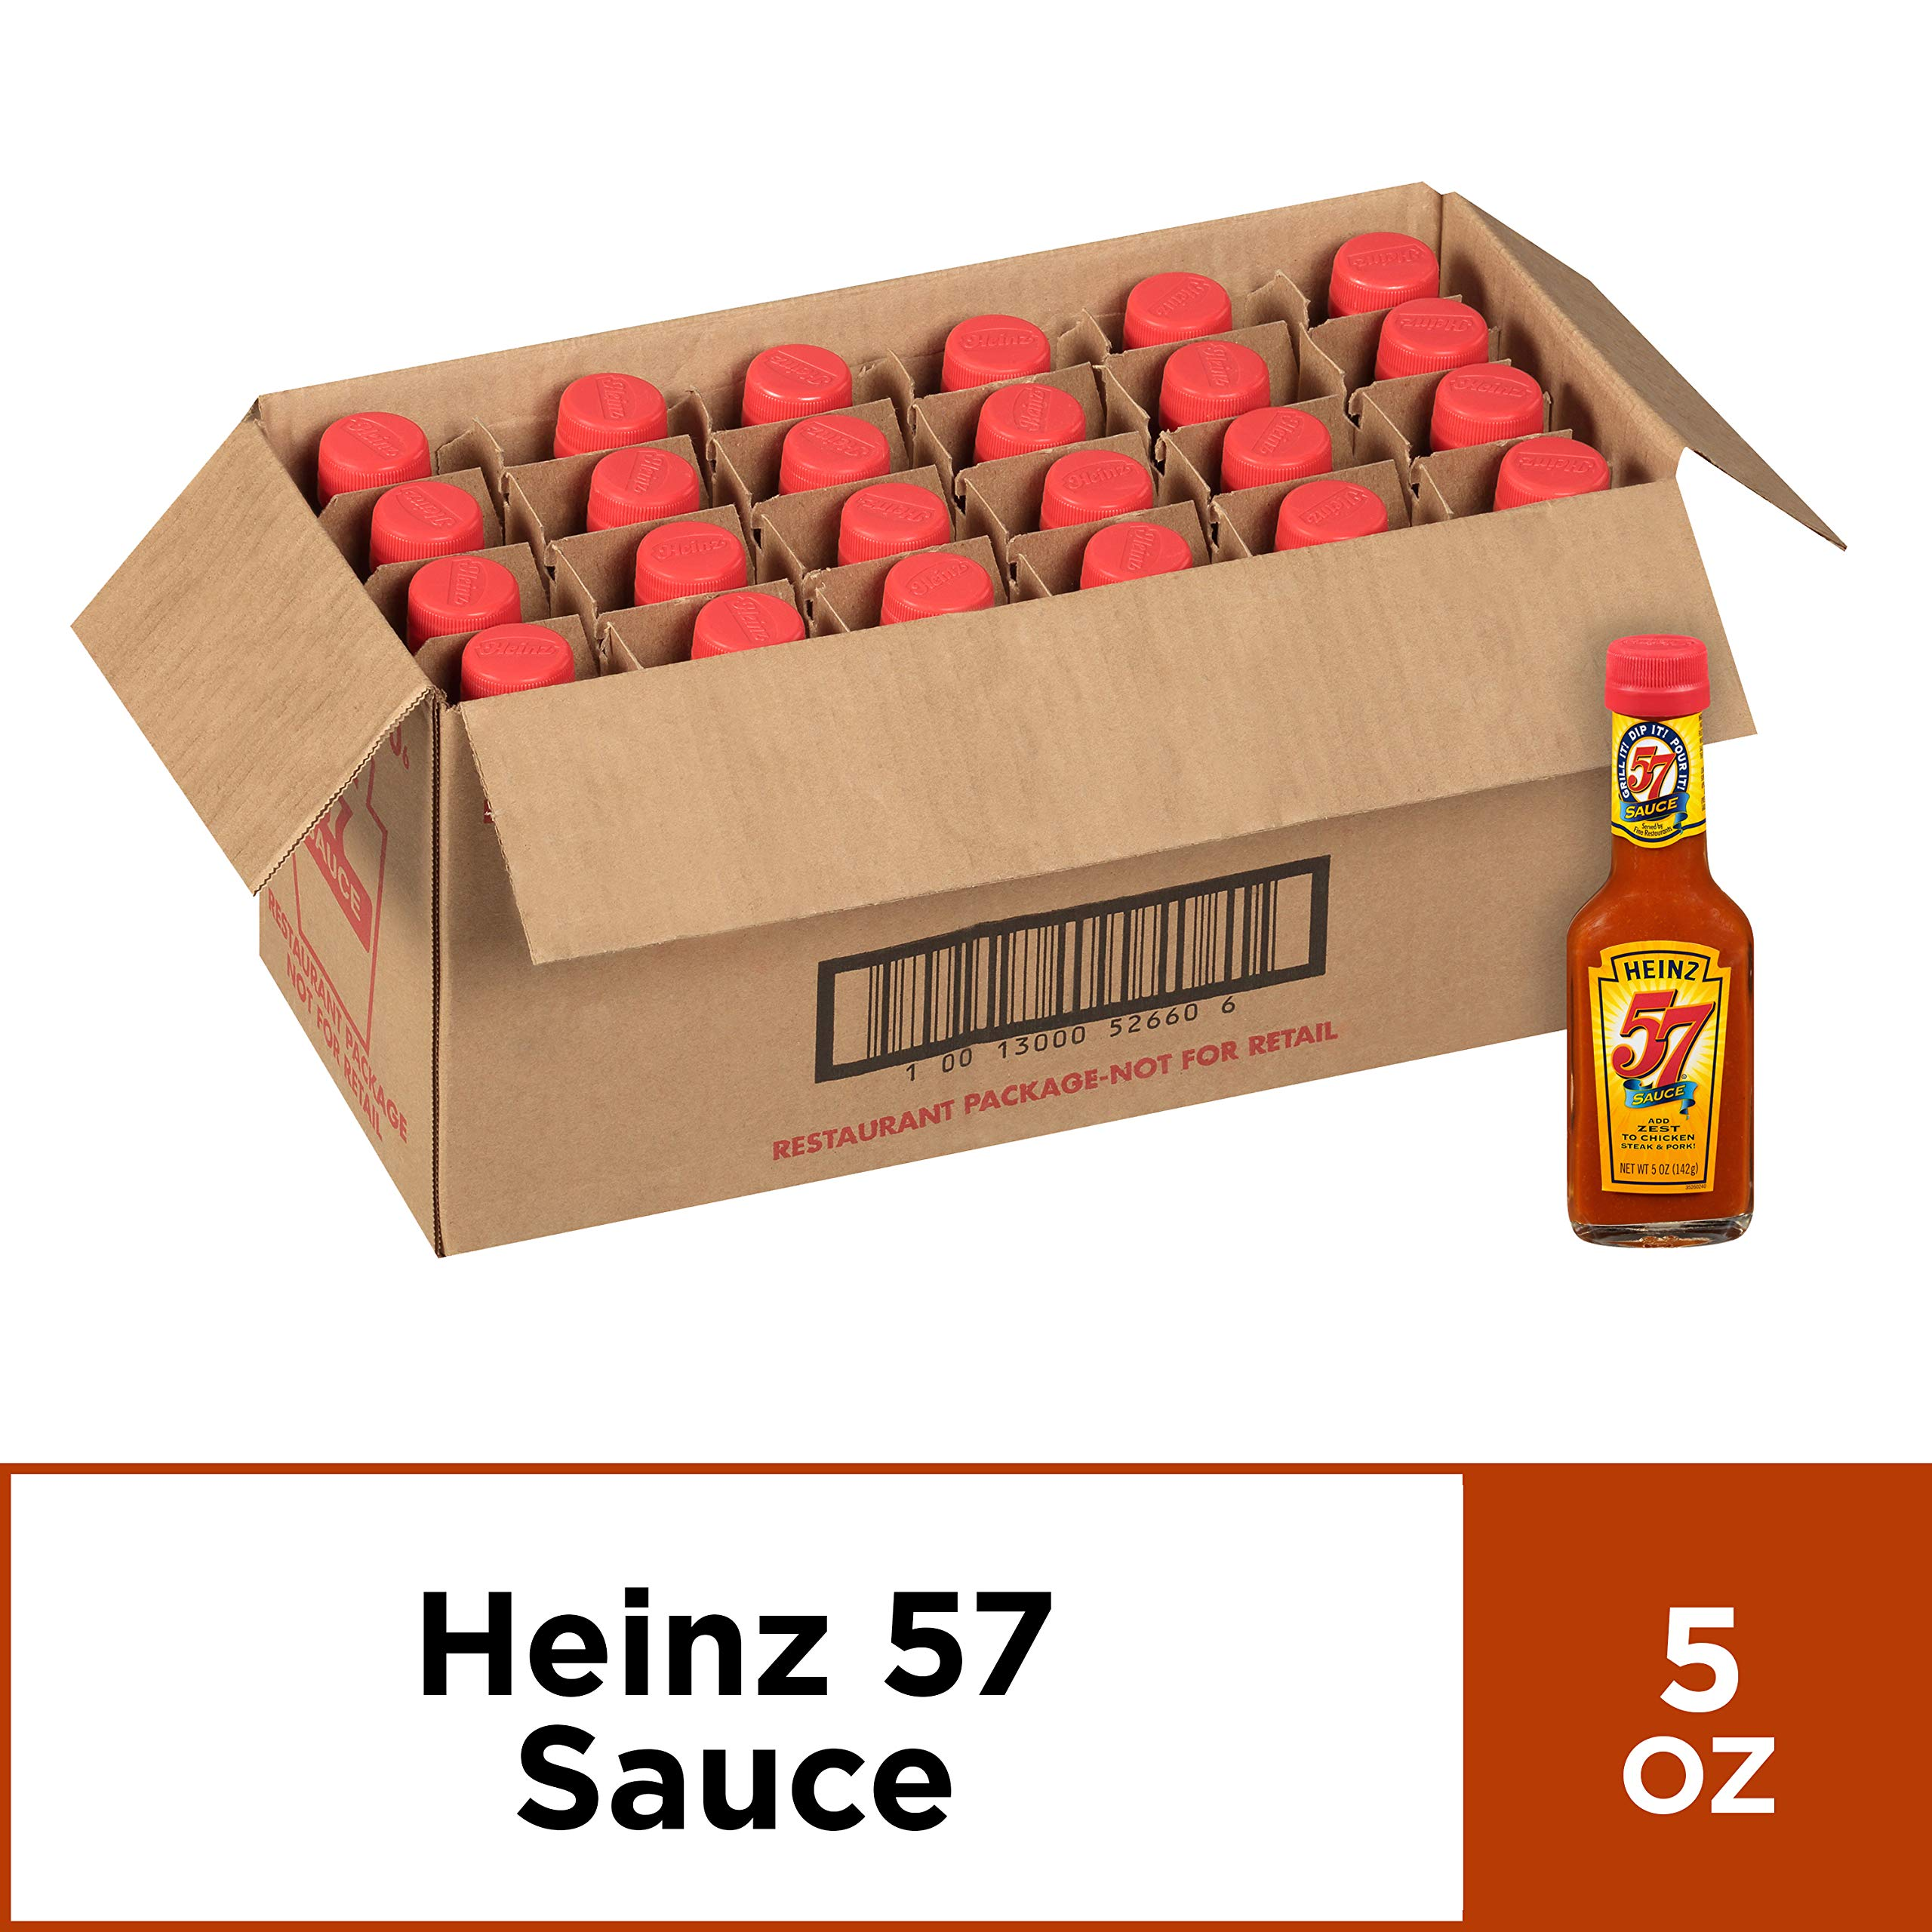 Heinz 57 Sauce 5 Oz Bottles Pack Of 24 Buy Online In Brunei At Brunei Desertcart Com Productid 22666220